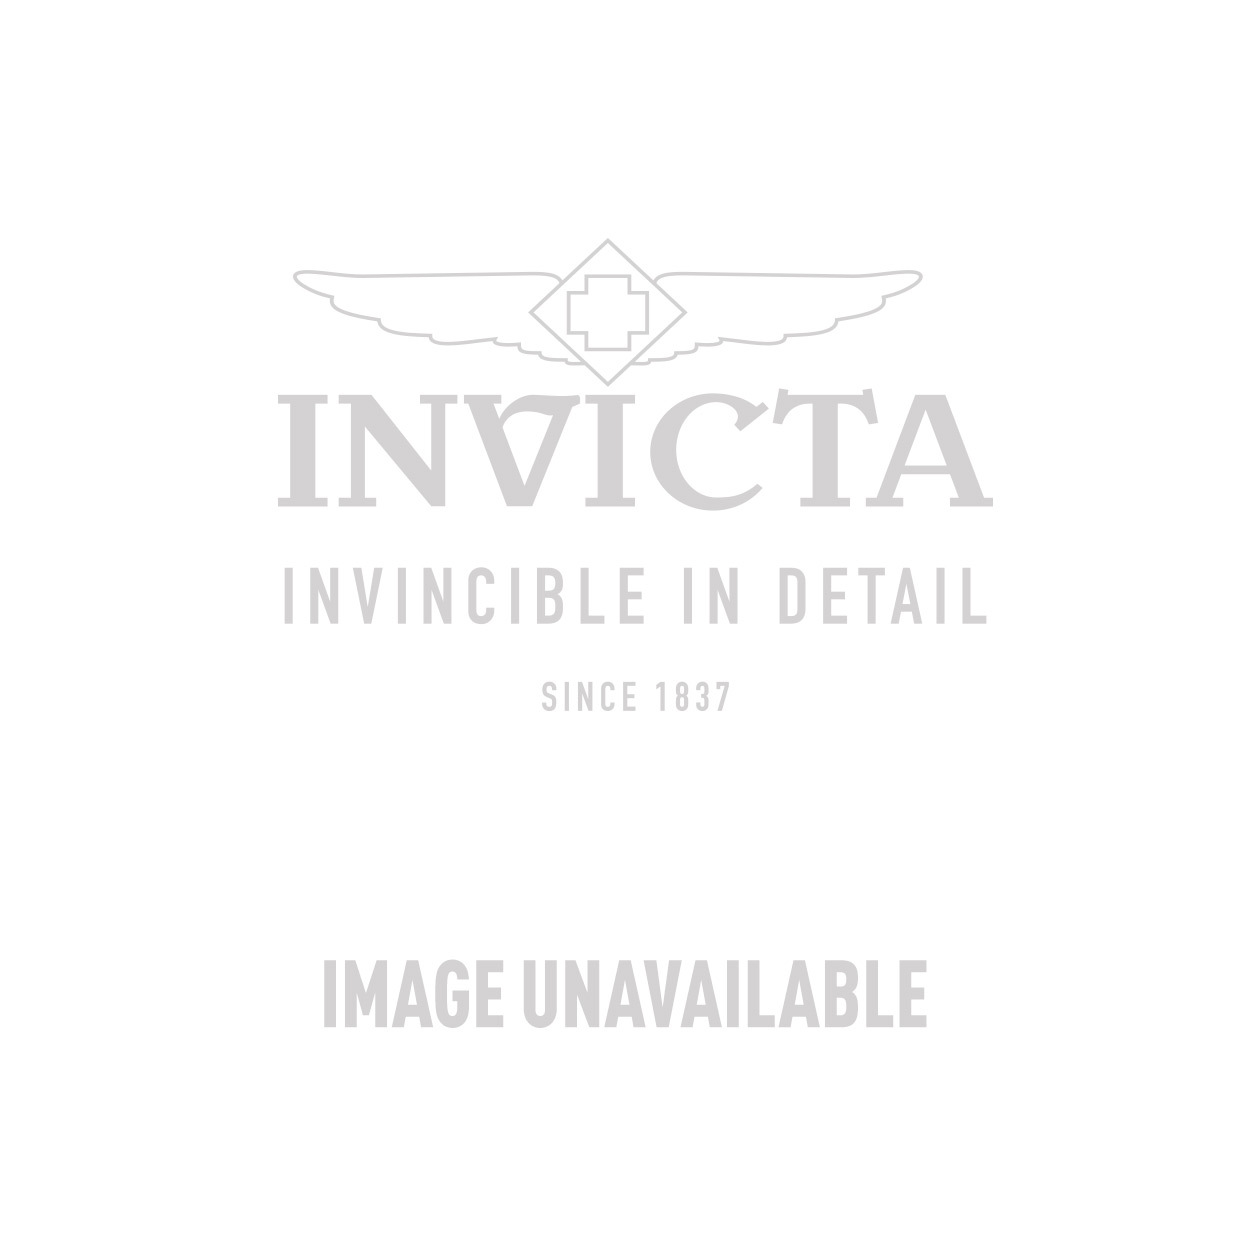 Invicta Vintage Swiss Movement Quartz Watch - Stainless Steel case Stainless Steel band - Model 12220